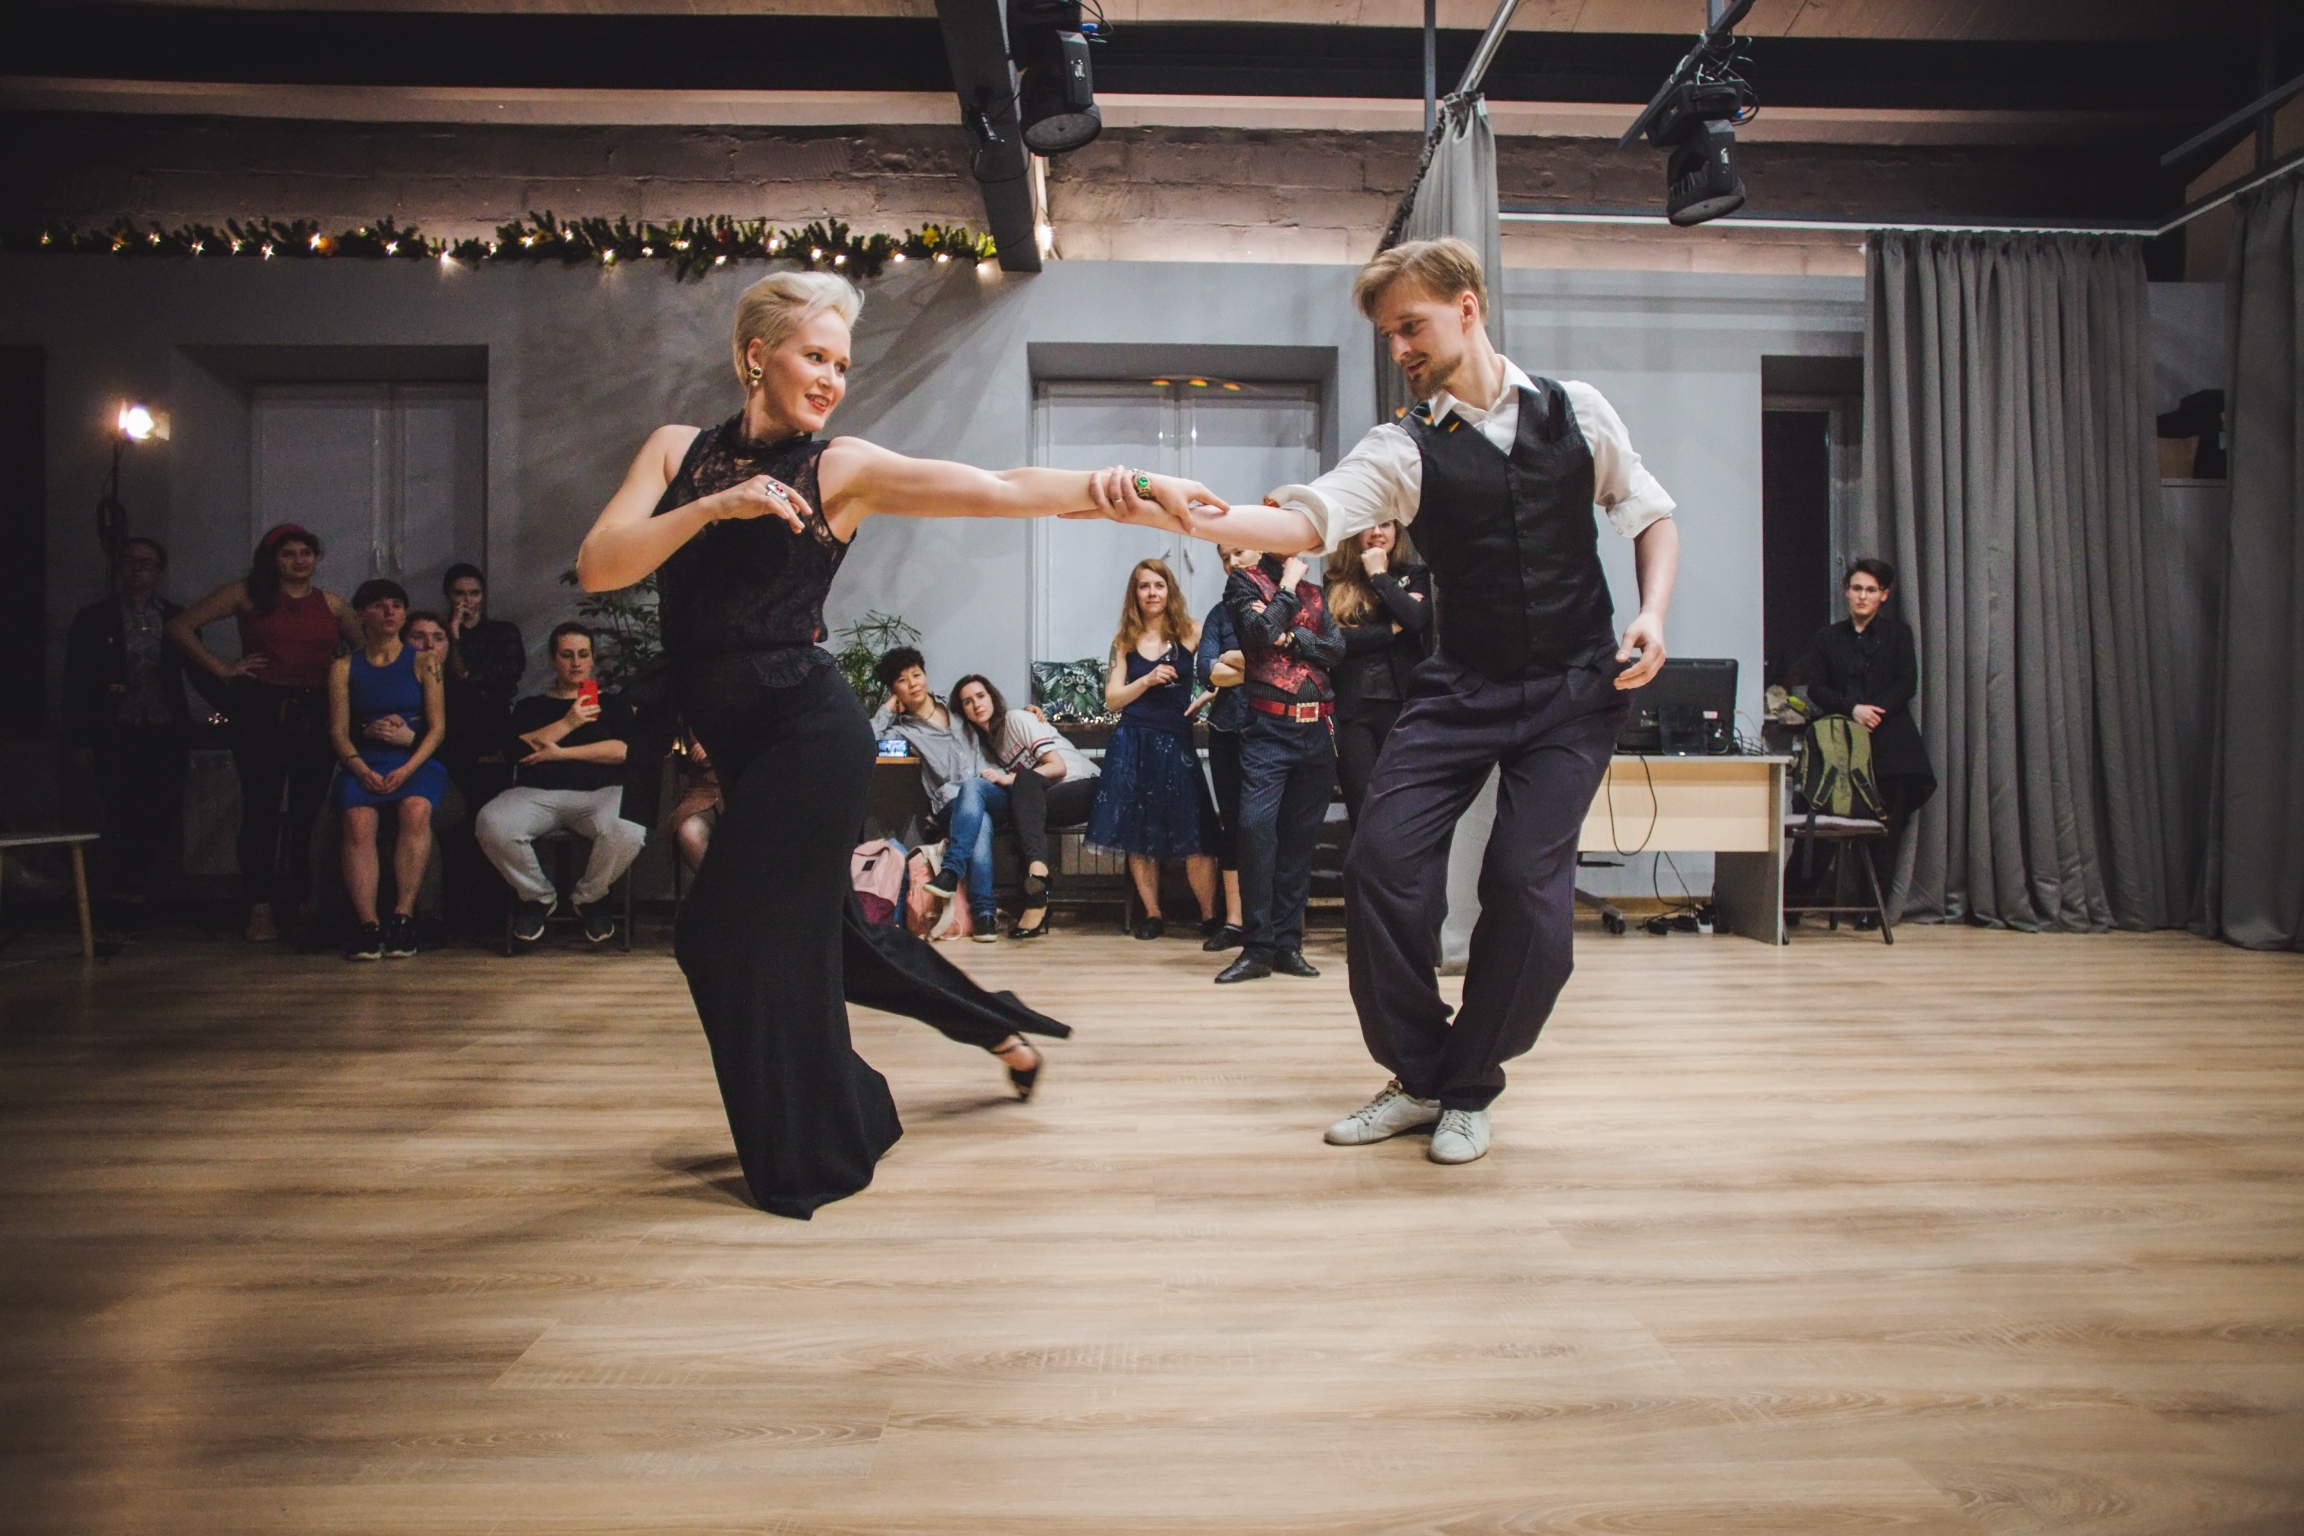 Two people dance at a studio together